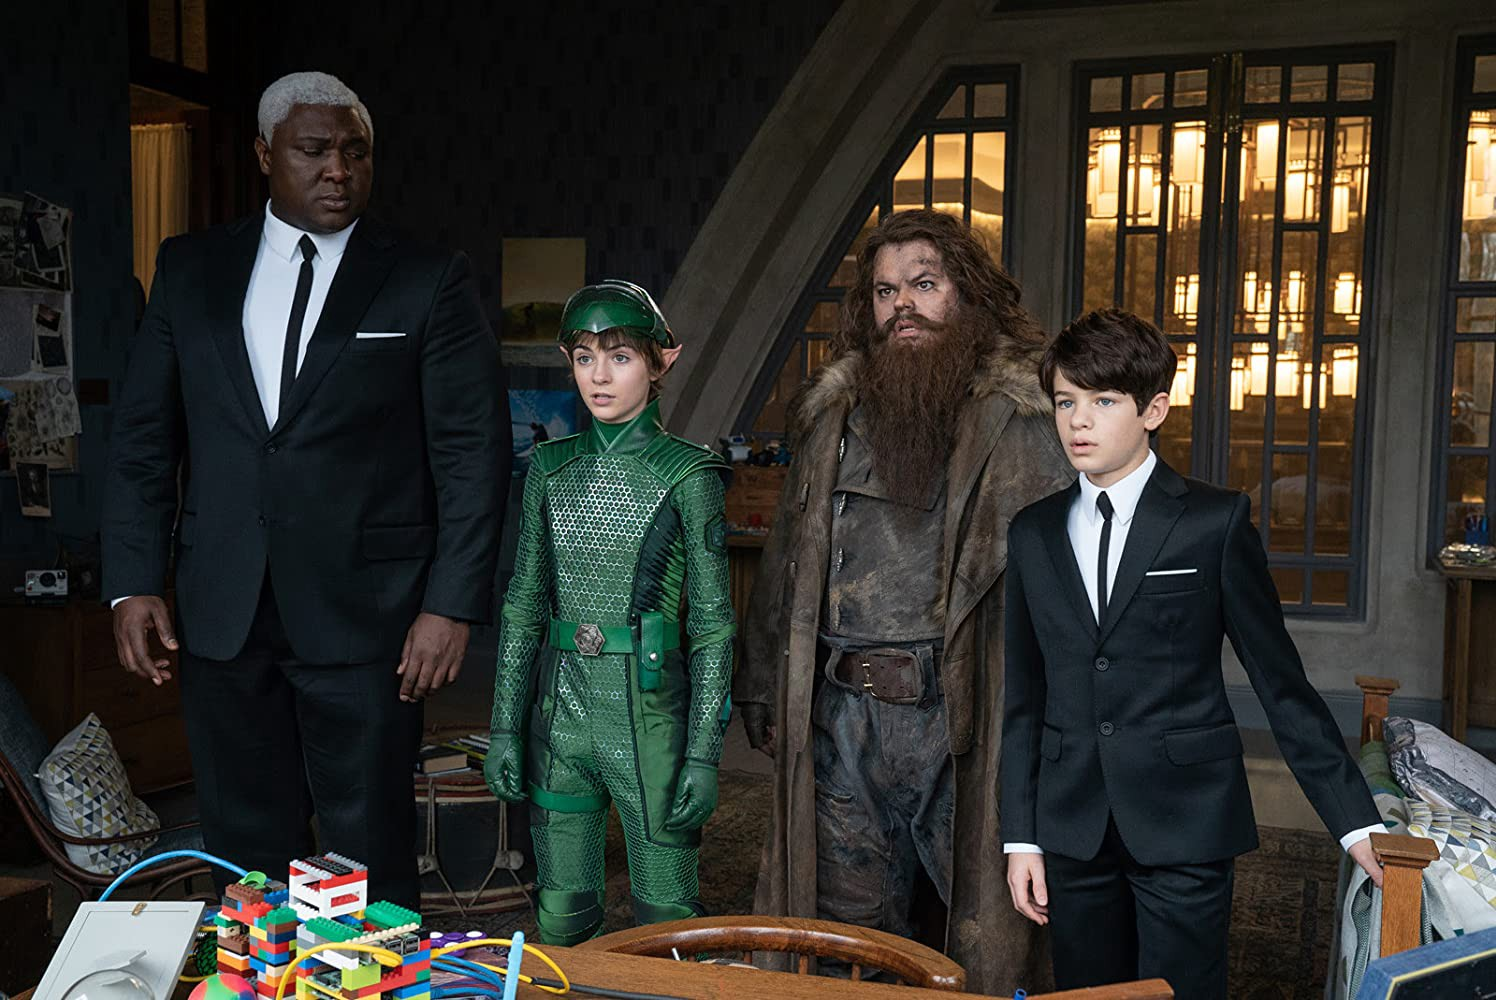 Domovol Butler (Nonso Anozie), the fairy Holly Short (Lara McDonnell), the giant dwarf Mitch Diggums (Josh Gad) and Artemis Fowl (Ferdia Shaw) in Artemis Fowl (2020)